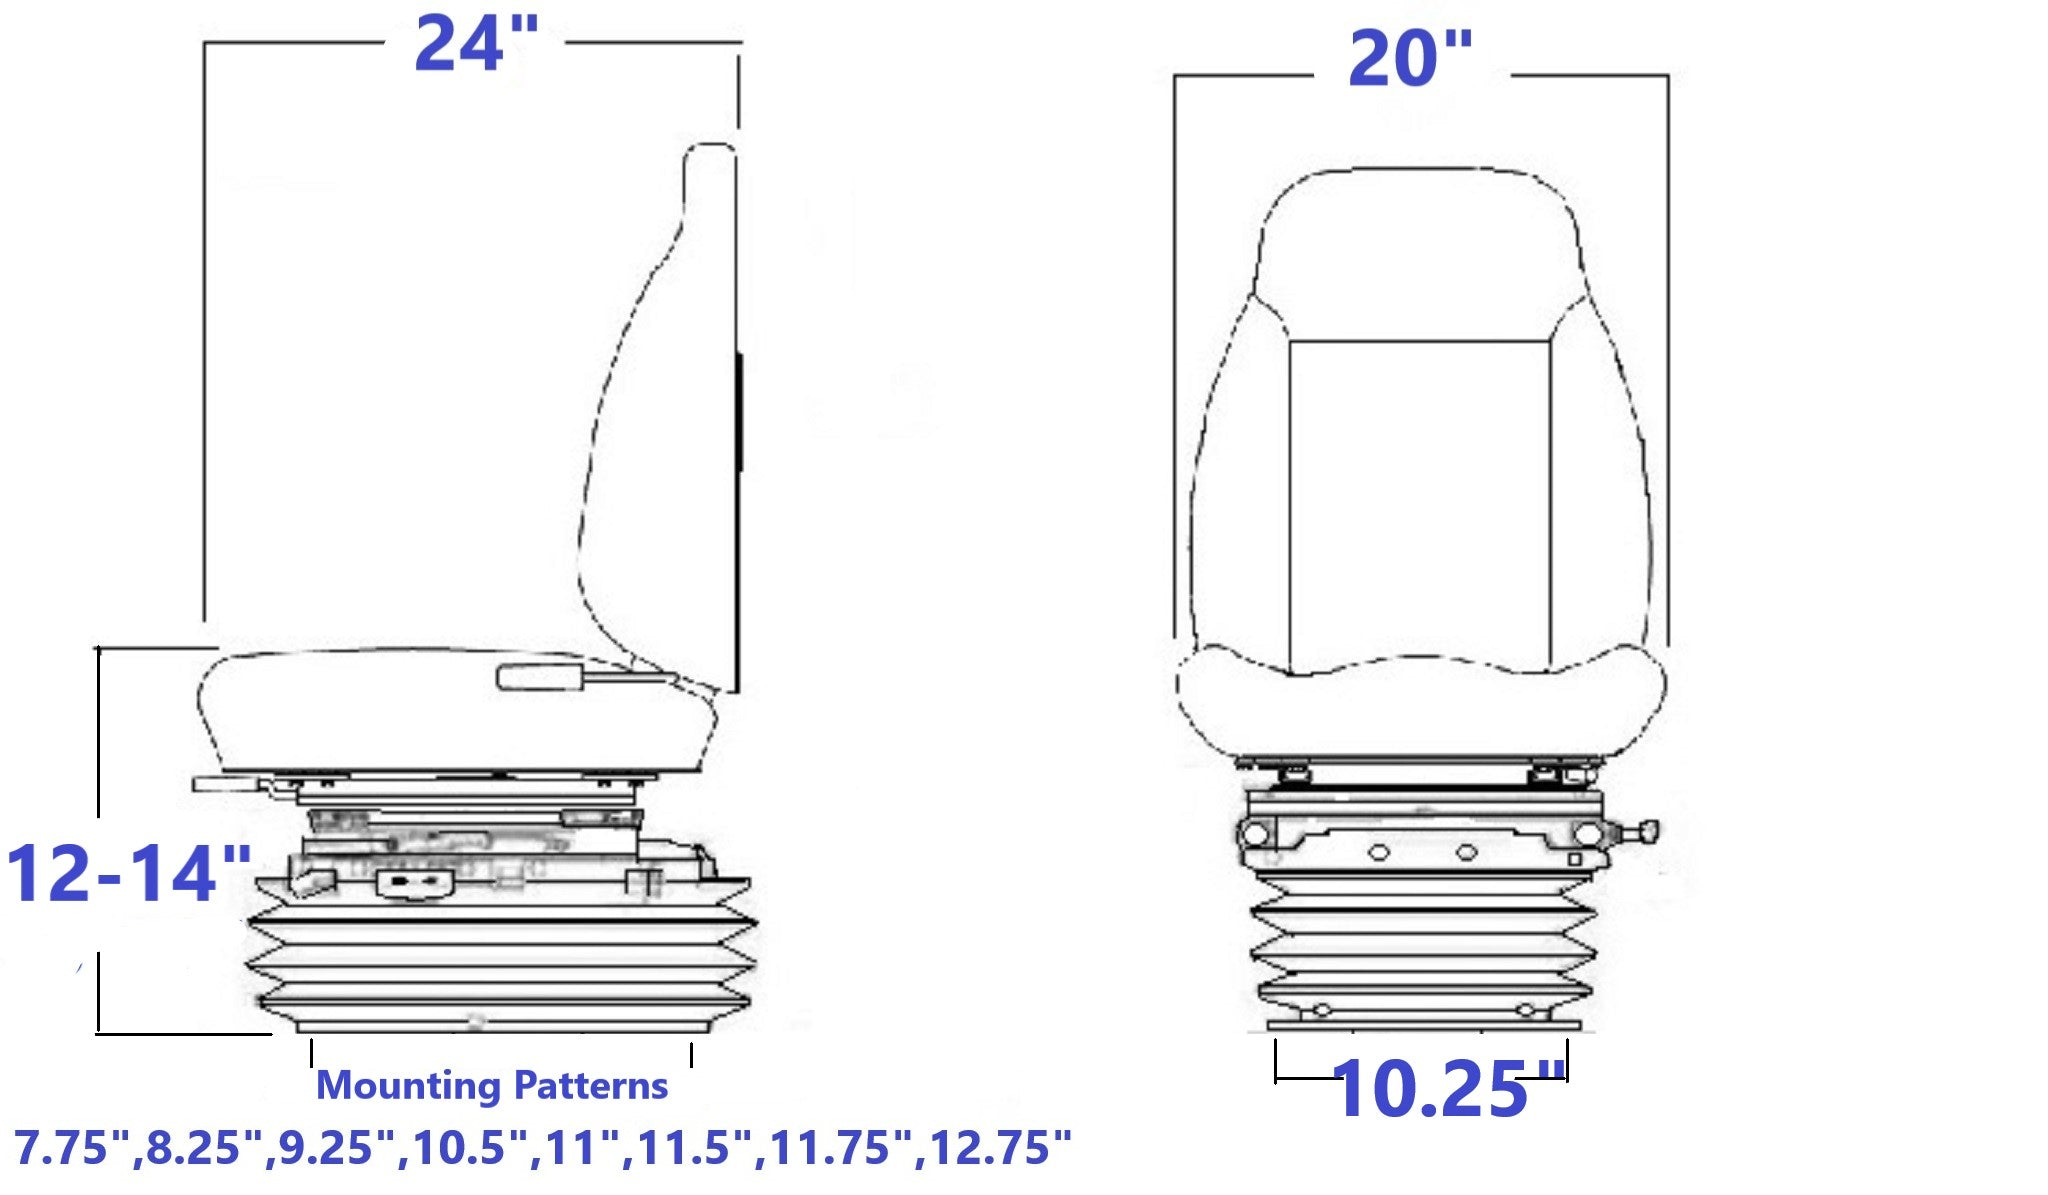 8544S Technical Drawing